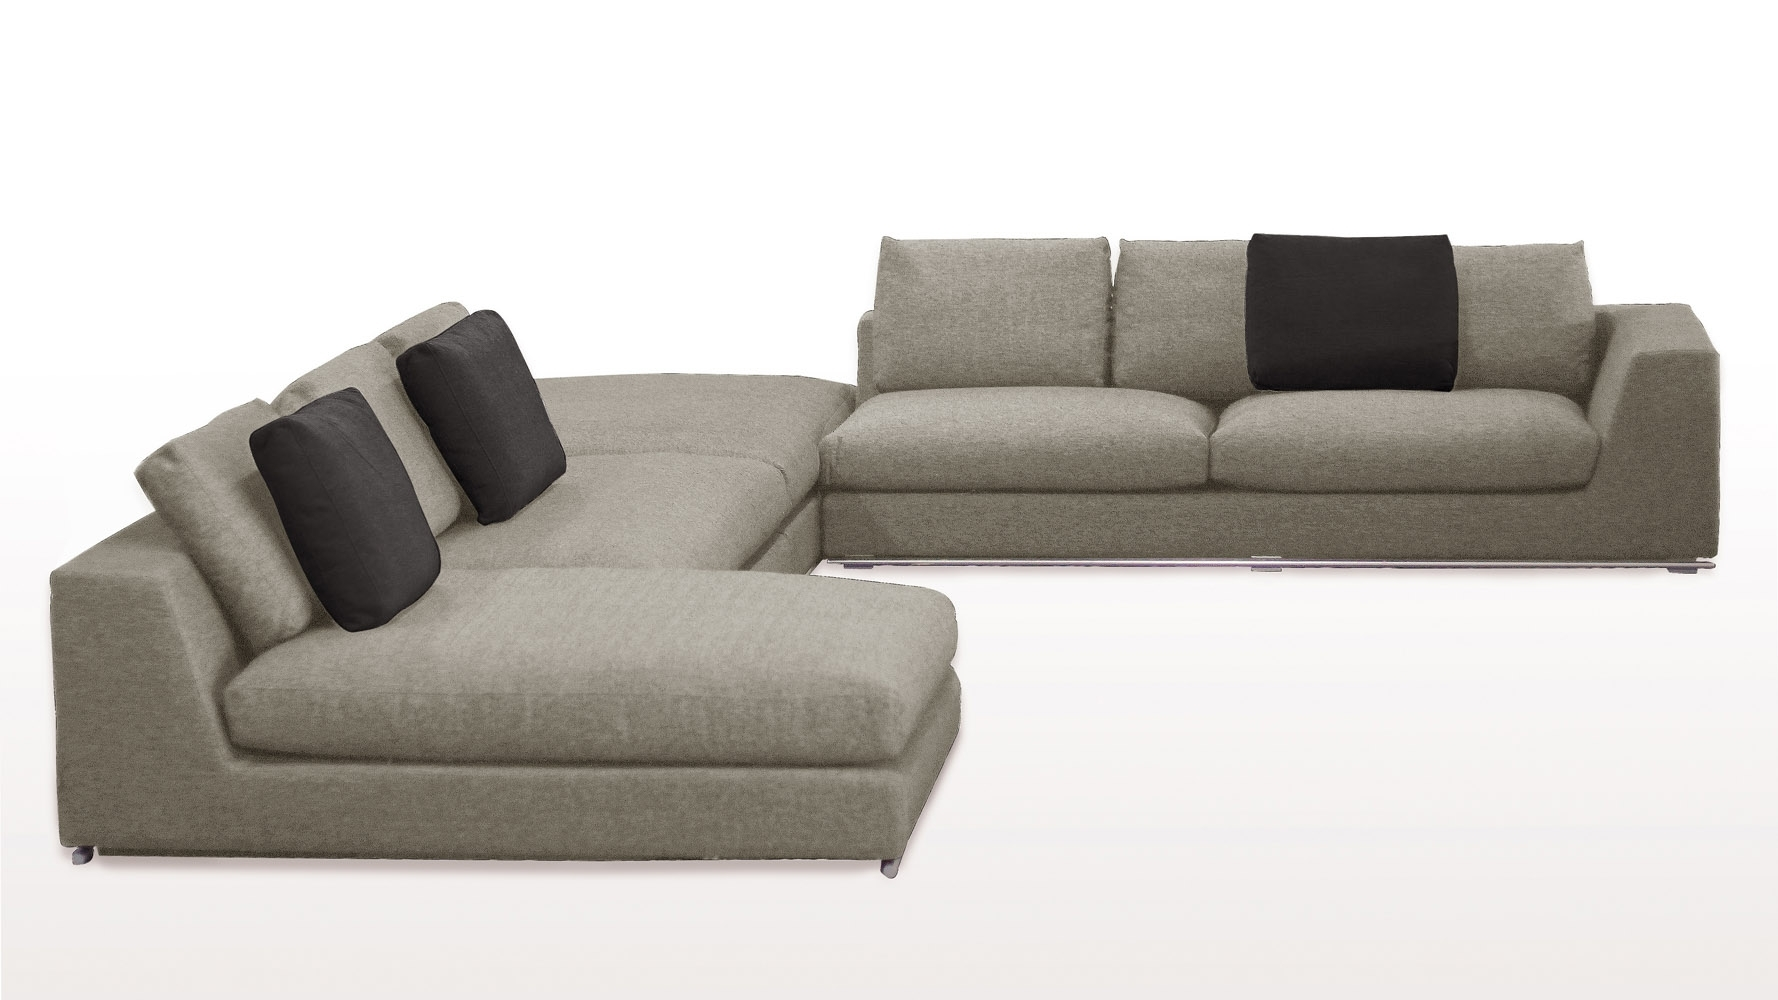 Trend Low Sectional Sofa 37 Living Room Sofa Ideas With Low In Low Sofas (View 2 of 10)